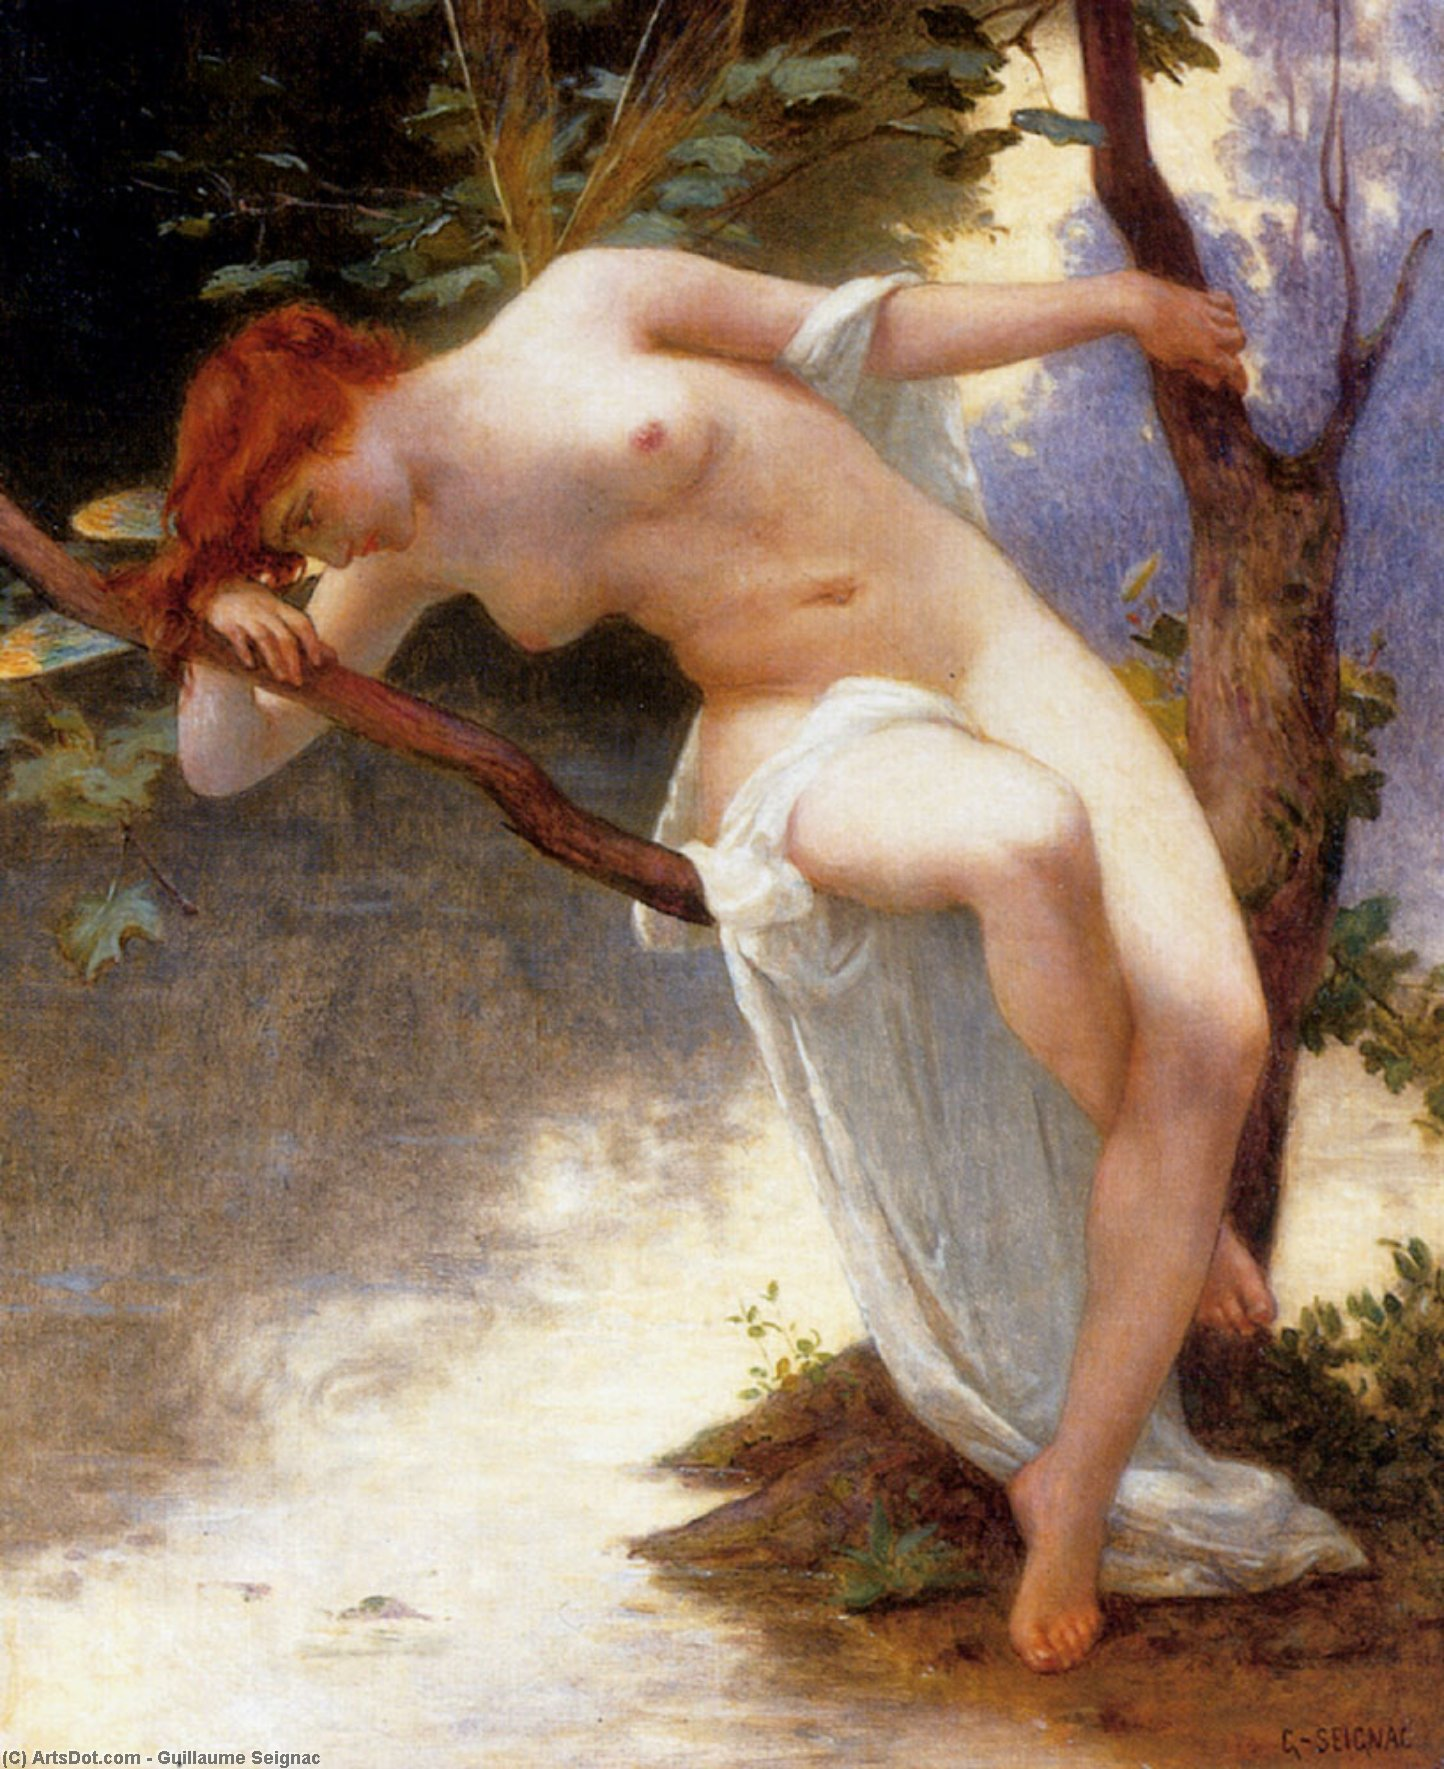 La Libellule, Oil On Canvas by Guillaume Seignac (1870-1924, France)